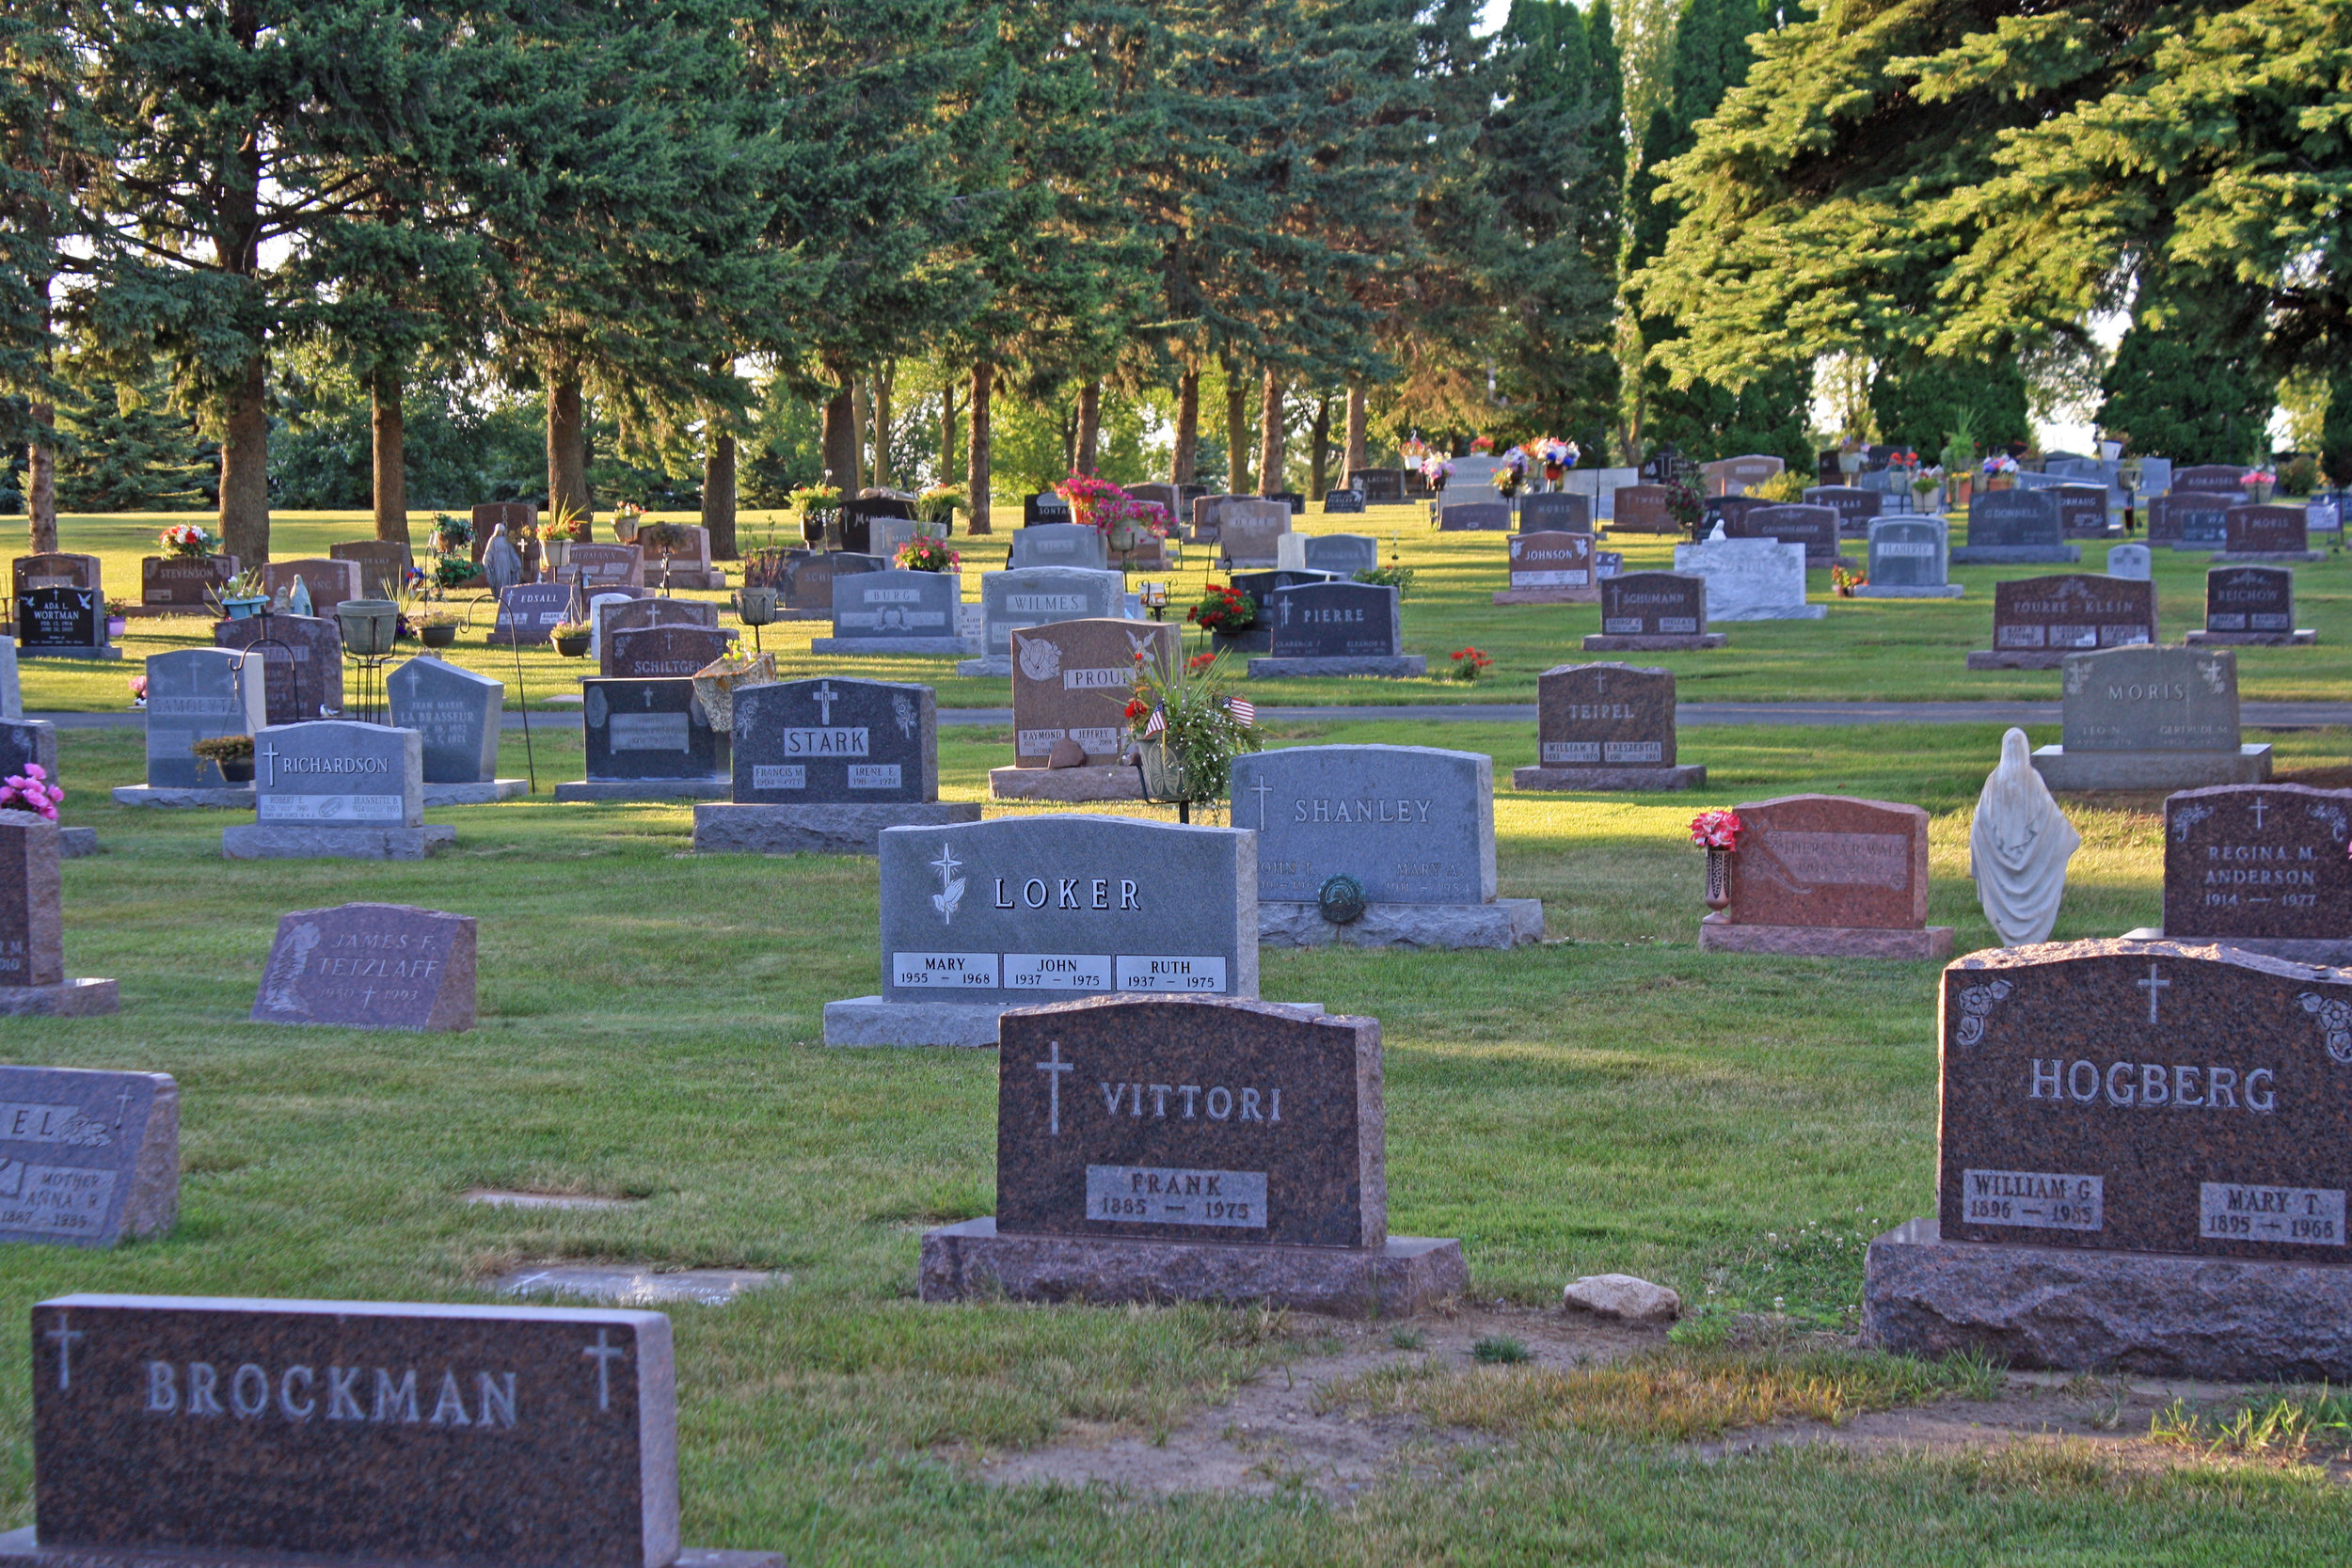 Grave stones in a cemetery